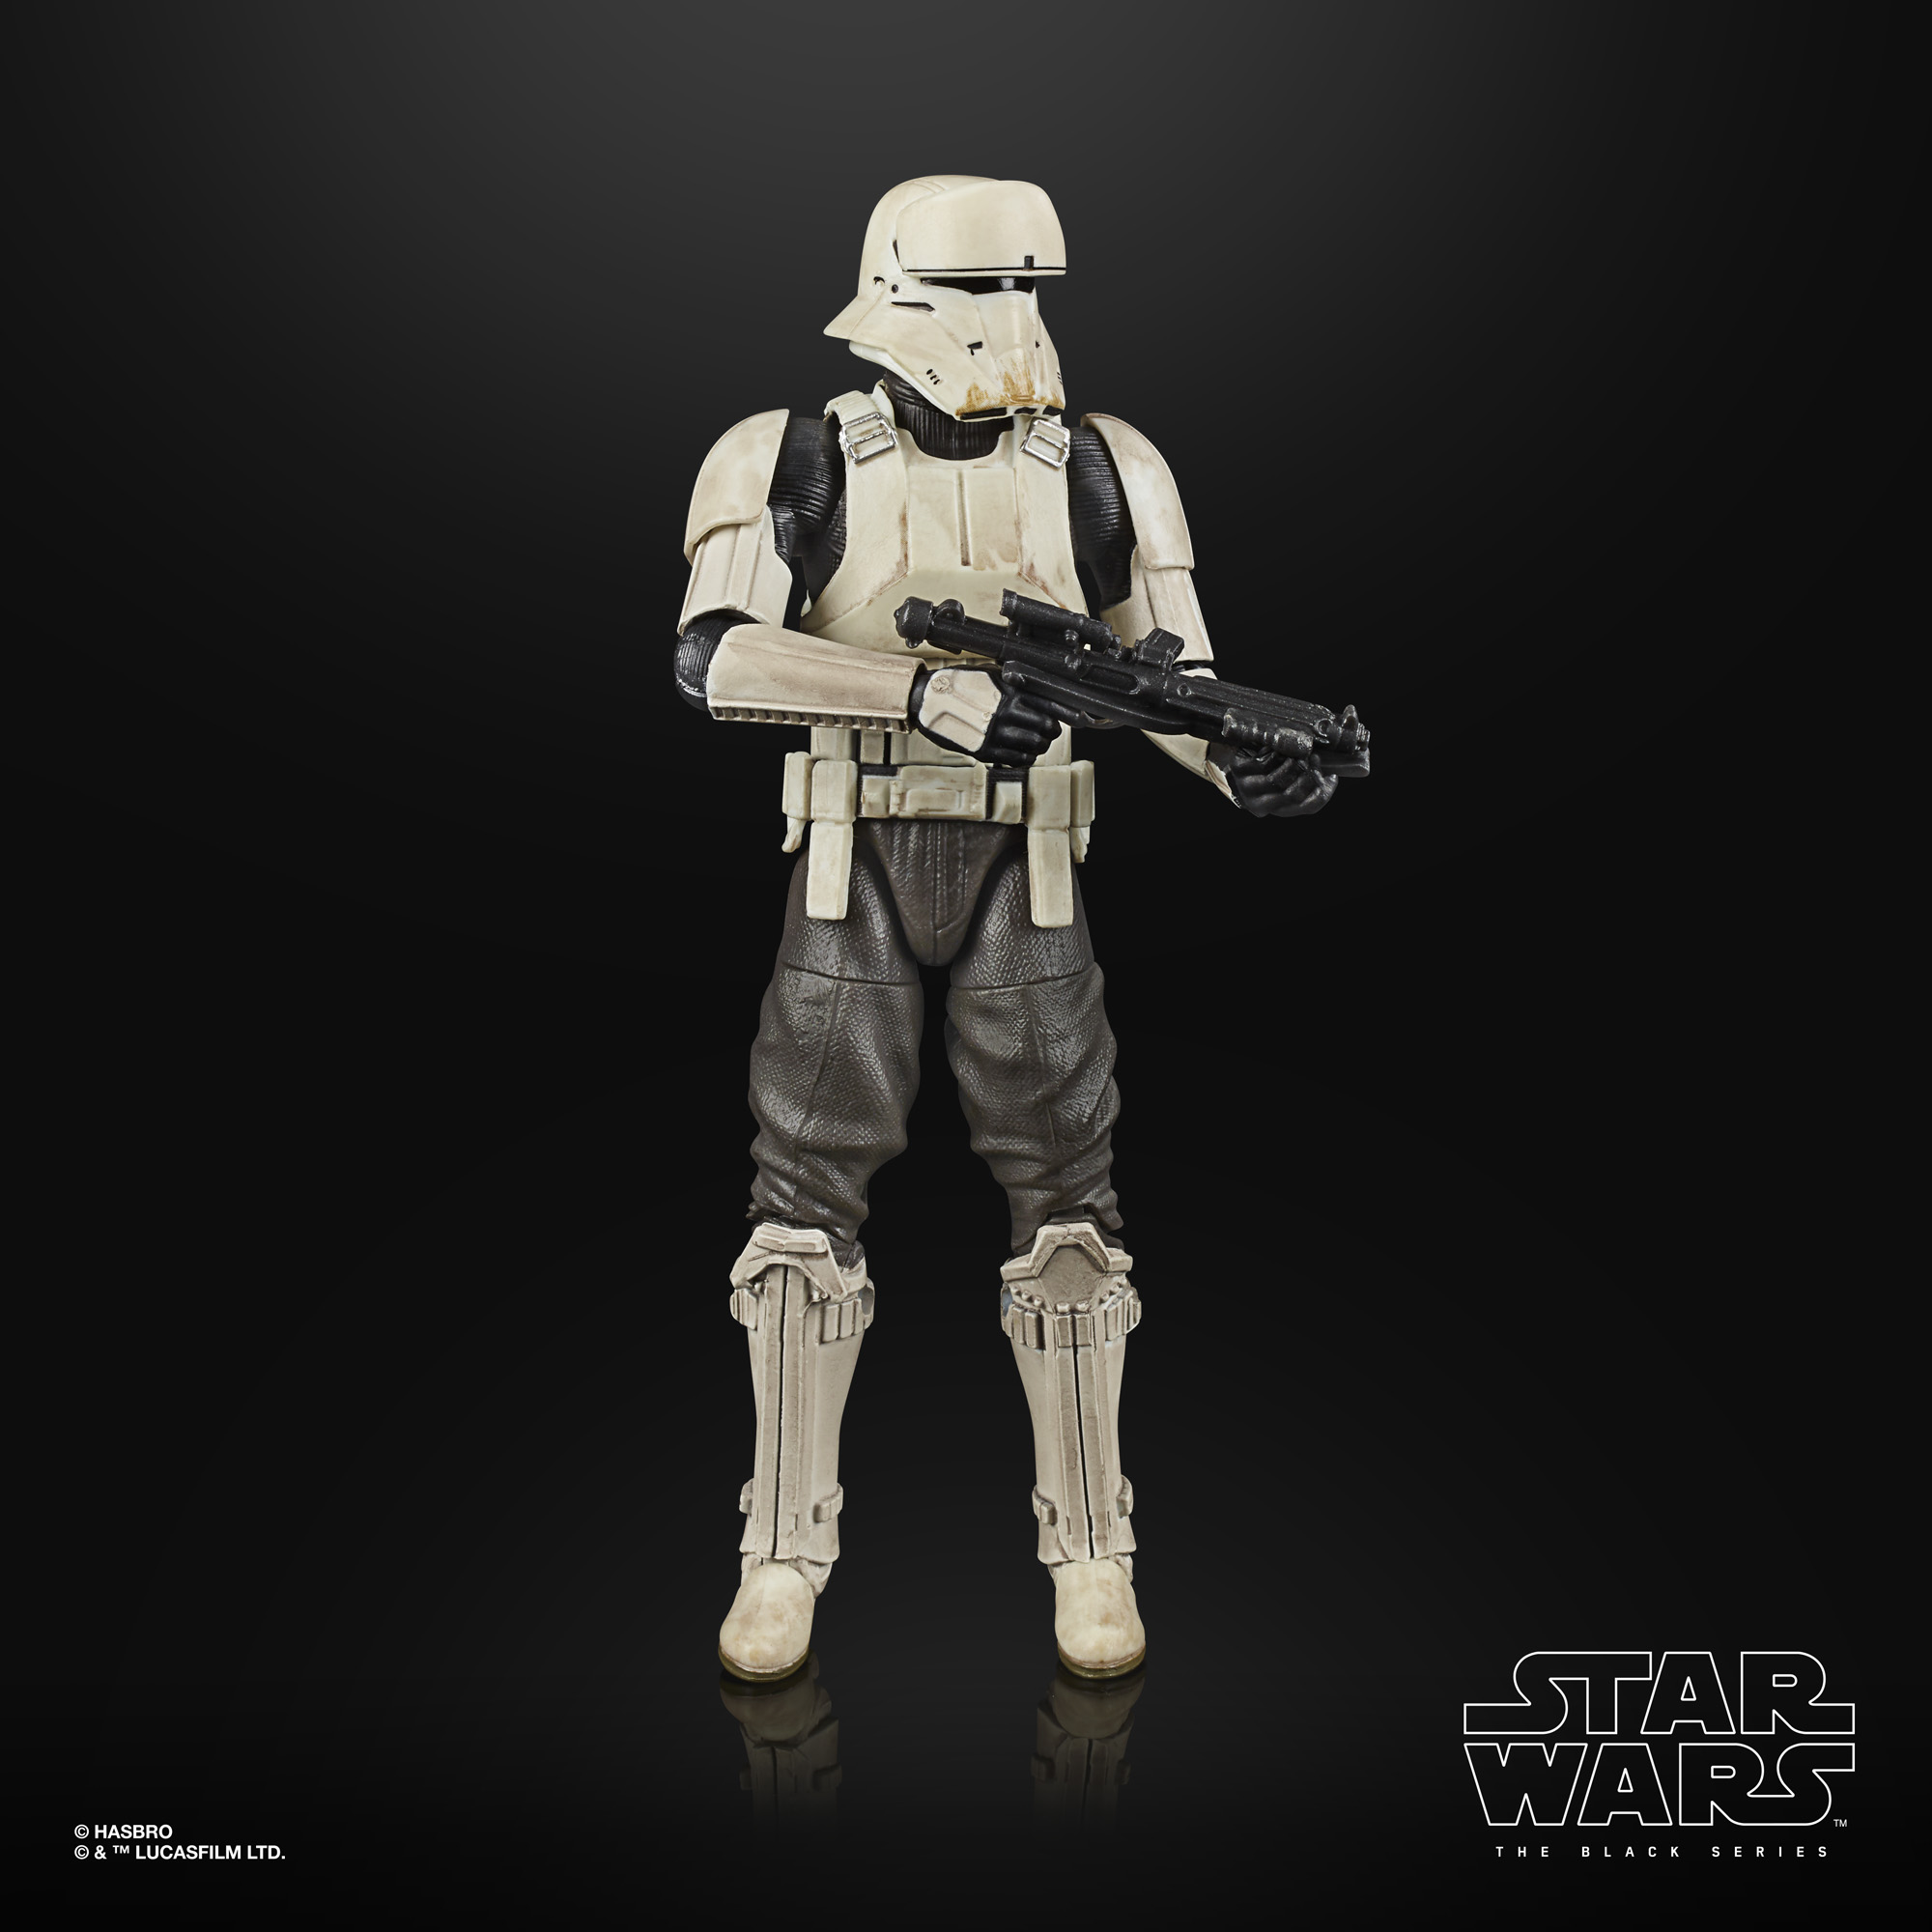 STAR WARS THE BLACK SERIES ARCHIVE 6-INCH IMPERIAL HOVERTANK DRIVER Figure – oop(1)